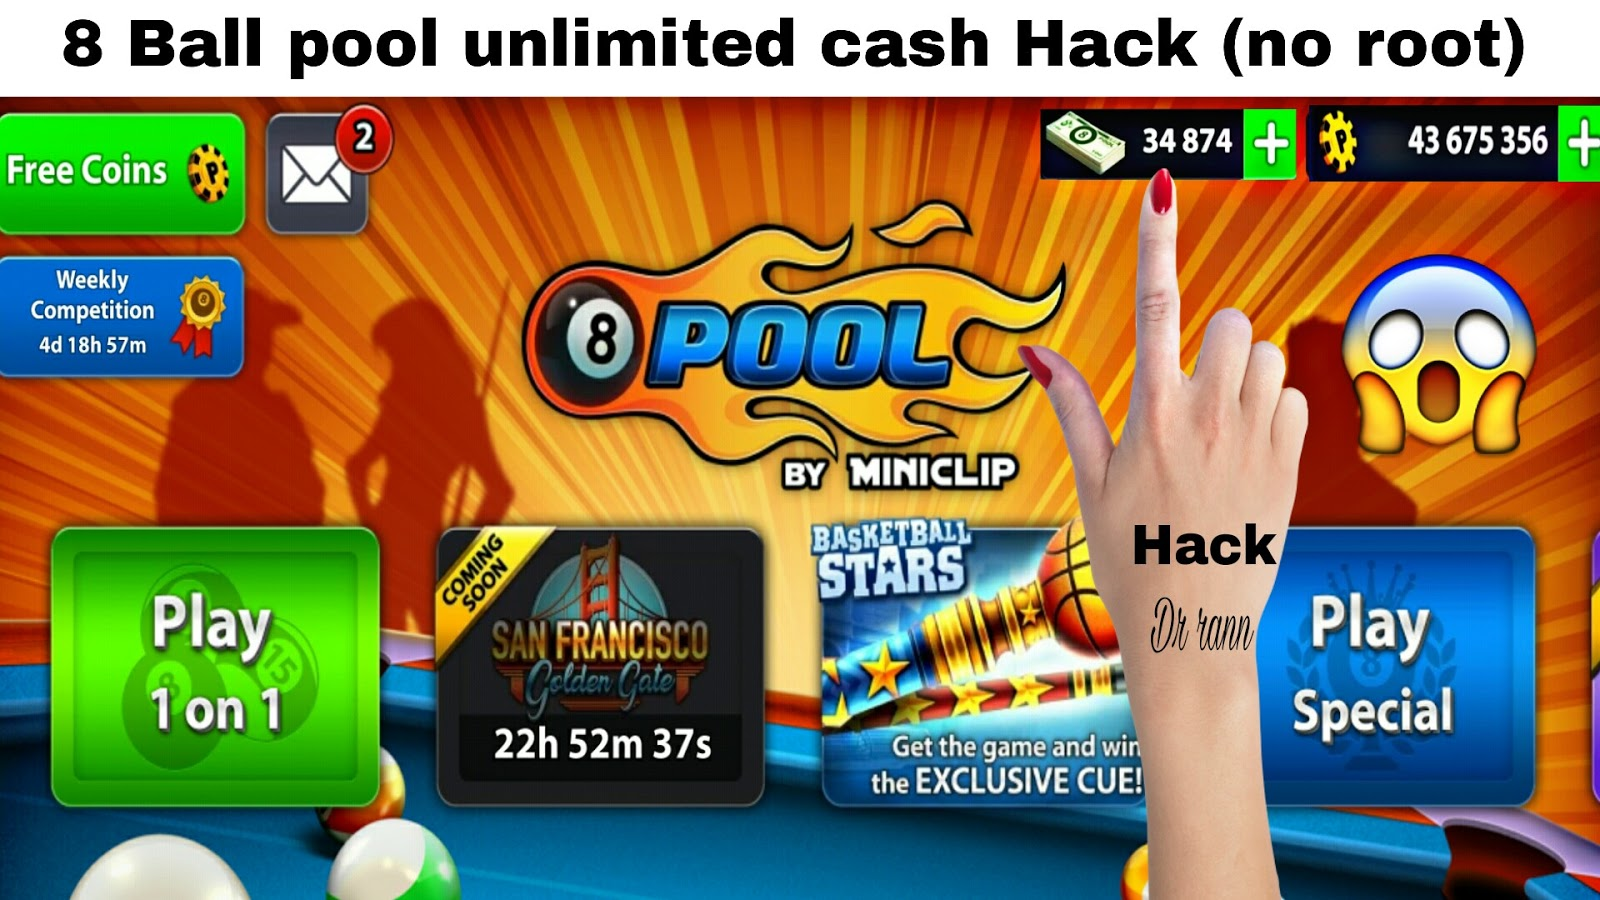 8 ball pool hack unlimited coins and cash guide